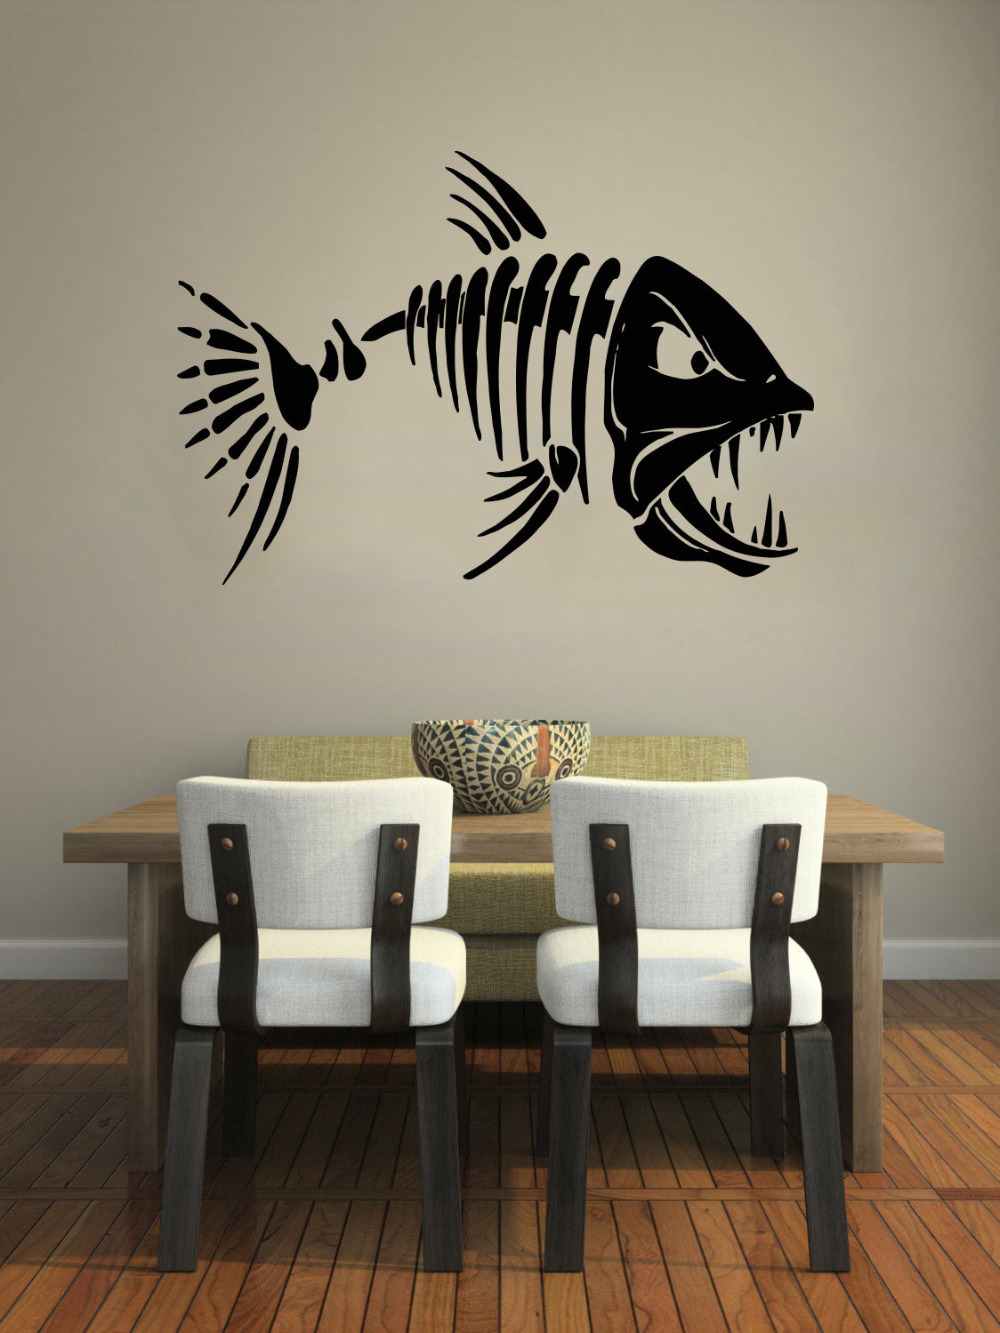 compare prices on kitchen cafe decor online shopping buy low wall decal quote skeleton fish fishing removable vinyl wall stickers home decor living room decals kitchen